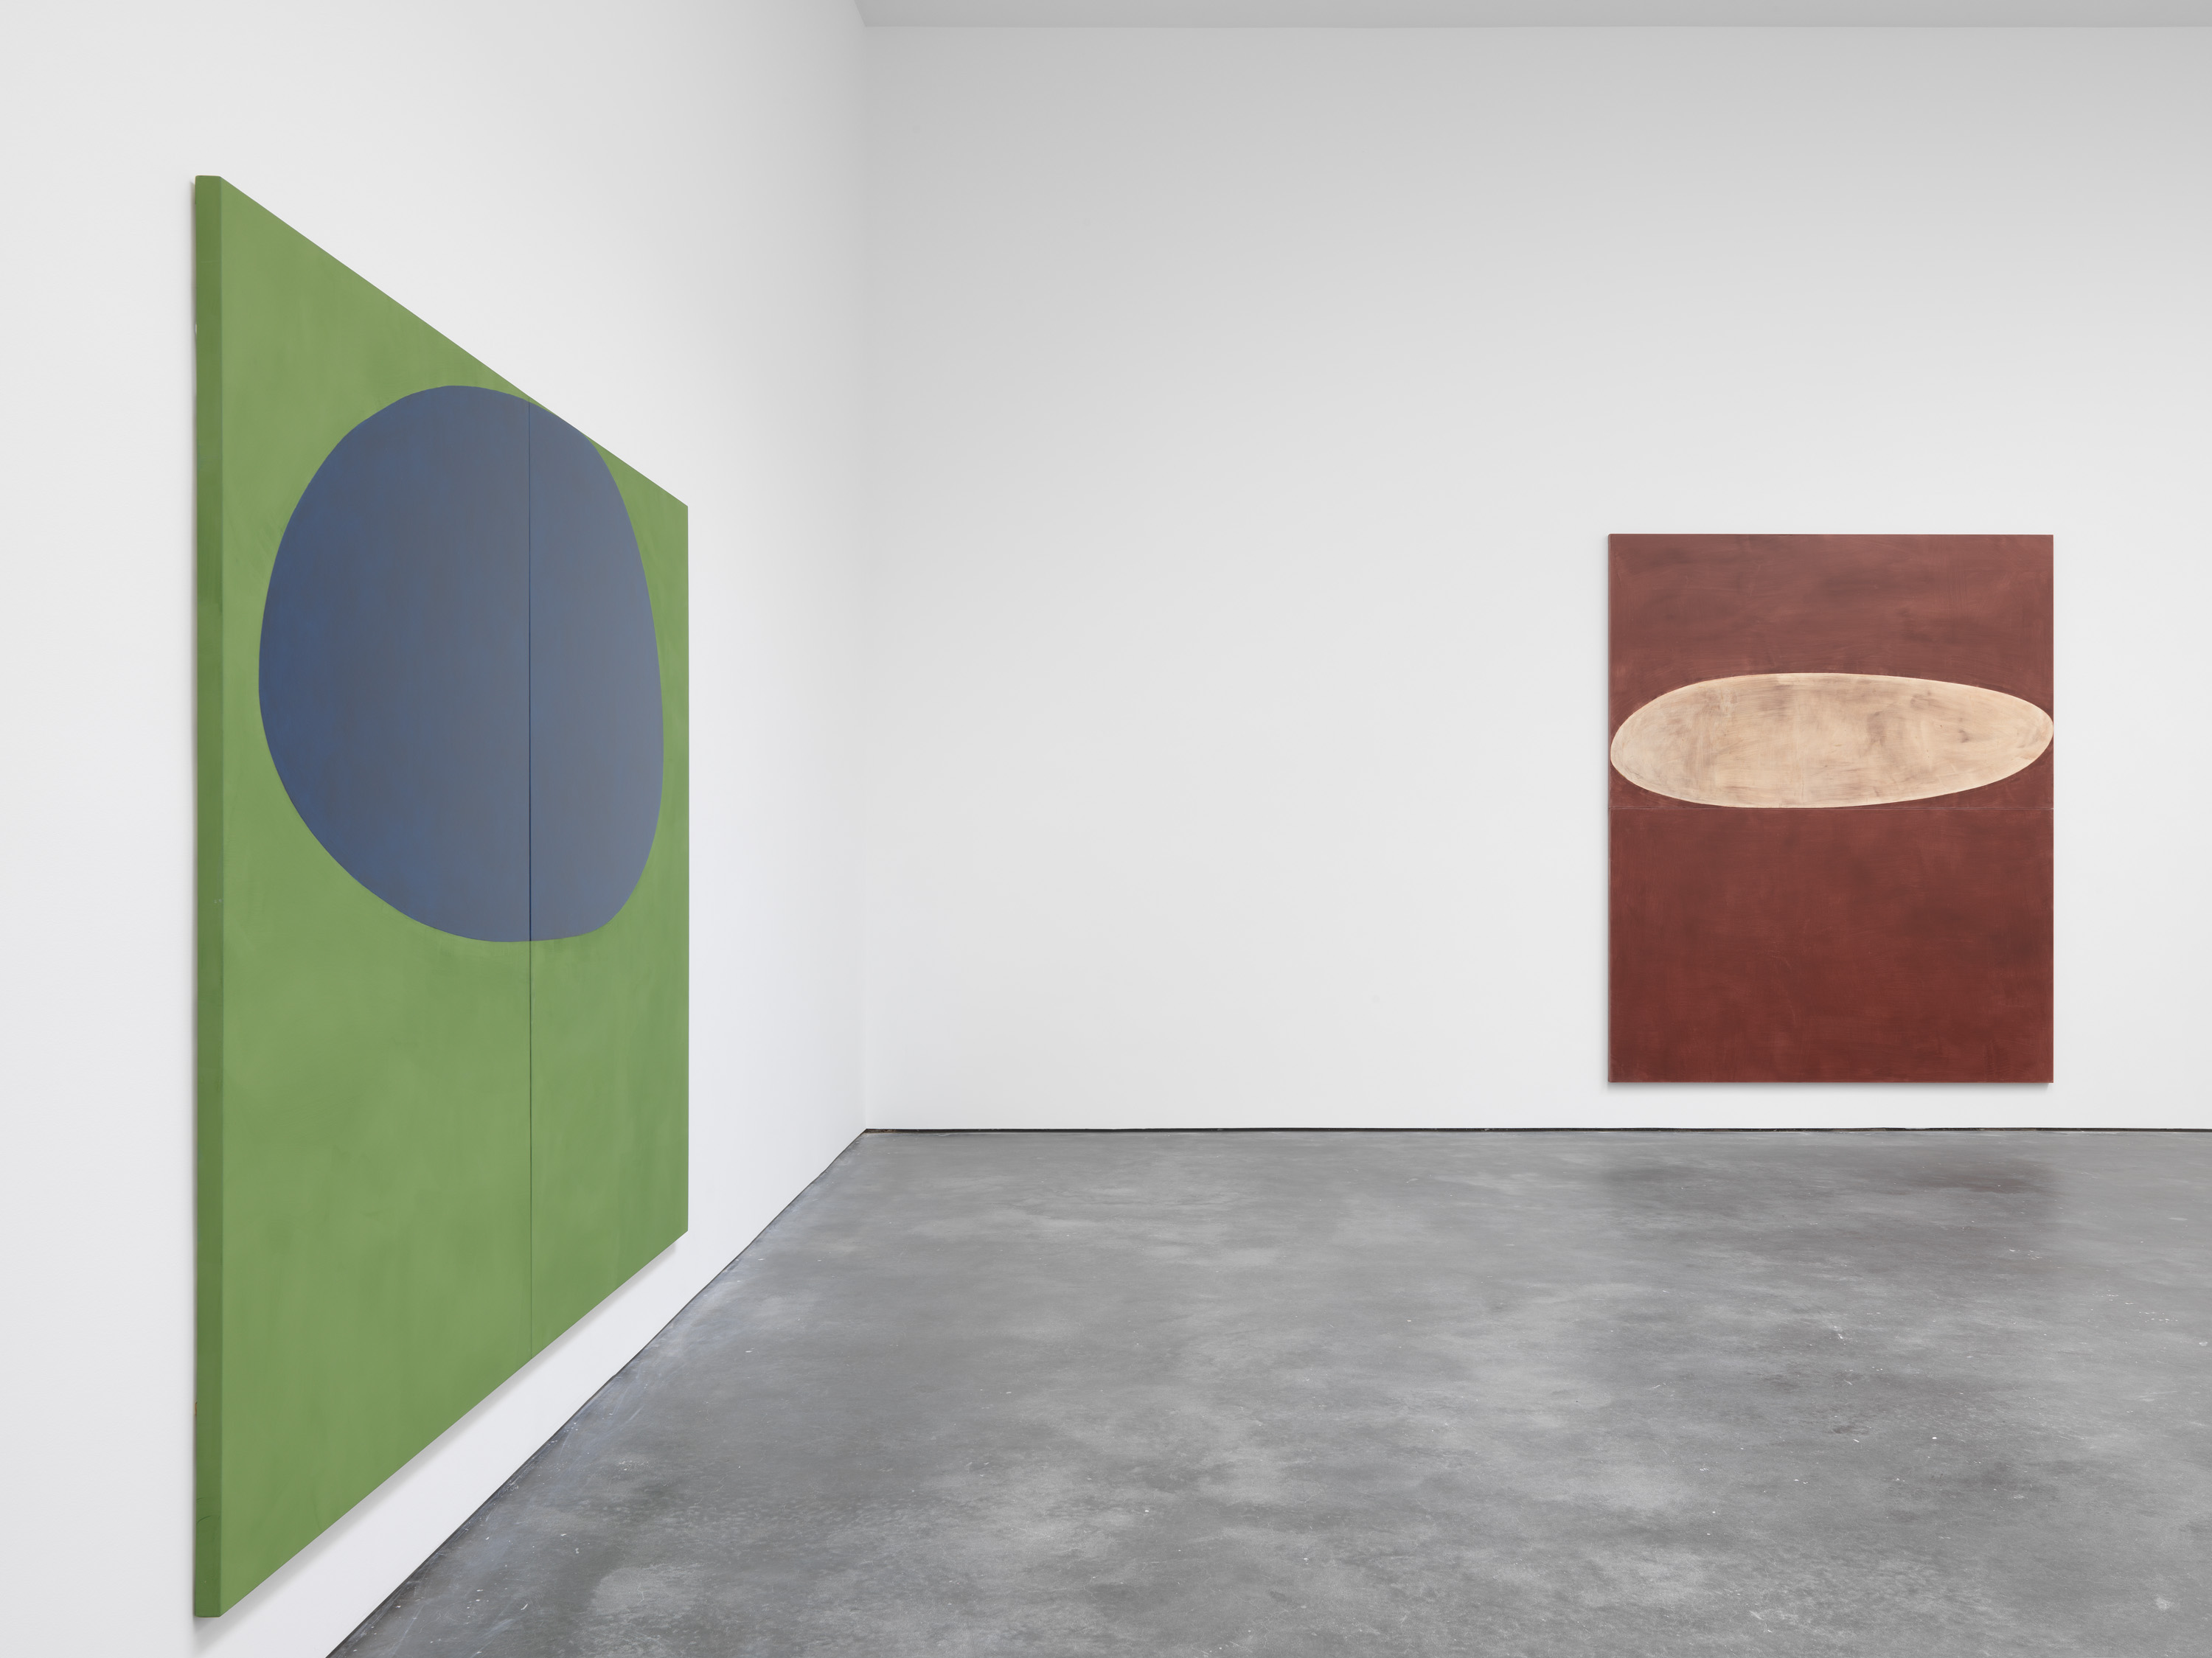 Installation view 5, Suzan Frecon: oil paintings, David Zwirner, New York, 2020 Courtesy David Zwirner